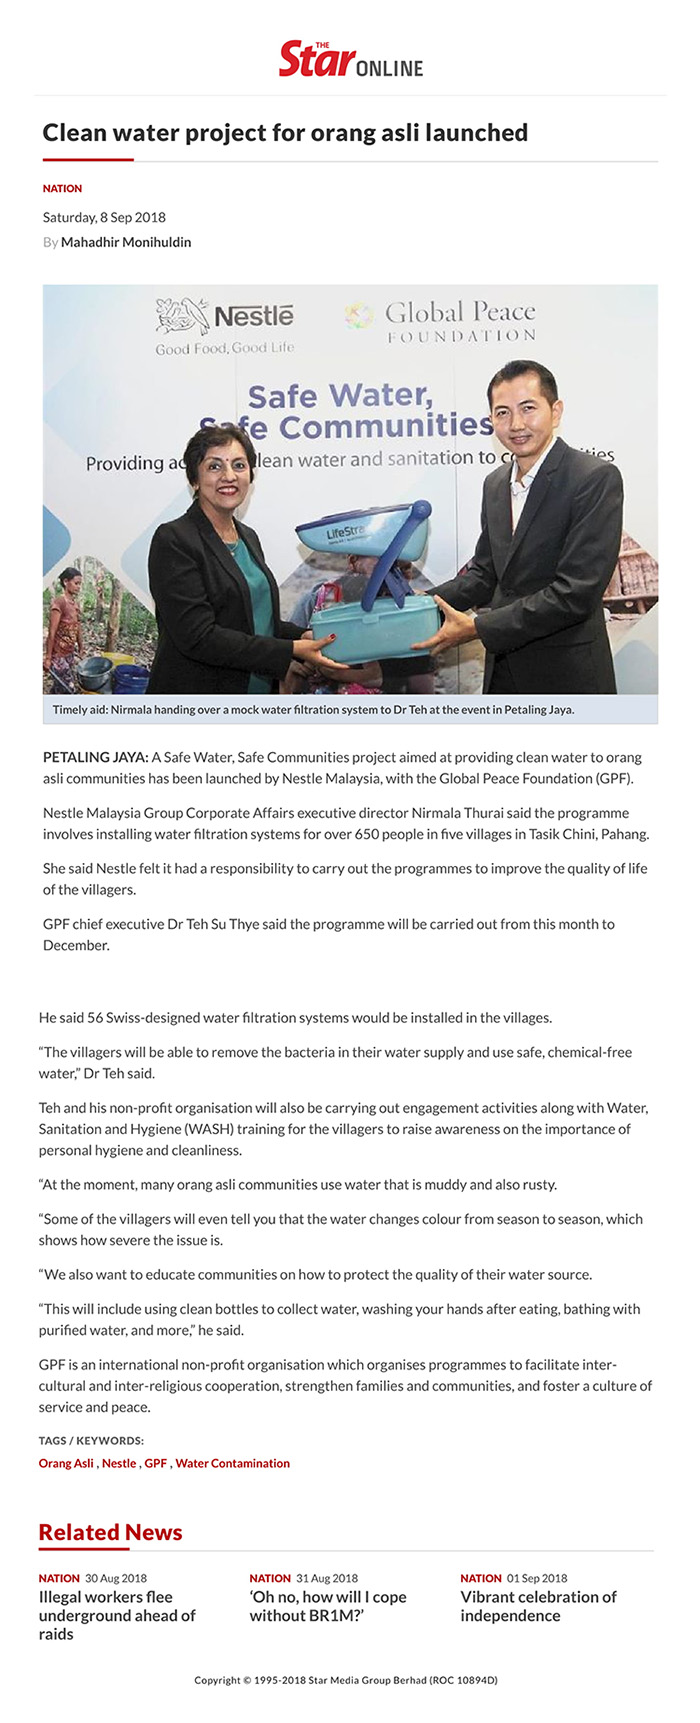 Clean water project for orang asli launched Read more at https://www.thestar.com.my/news/nation/2018/09/08/clean-water-project-for-orang-asli-launched/#aw2JiIGdpZrIyLSc.99